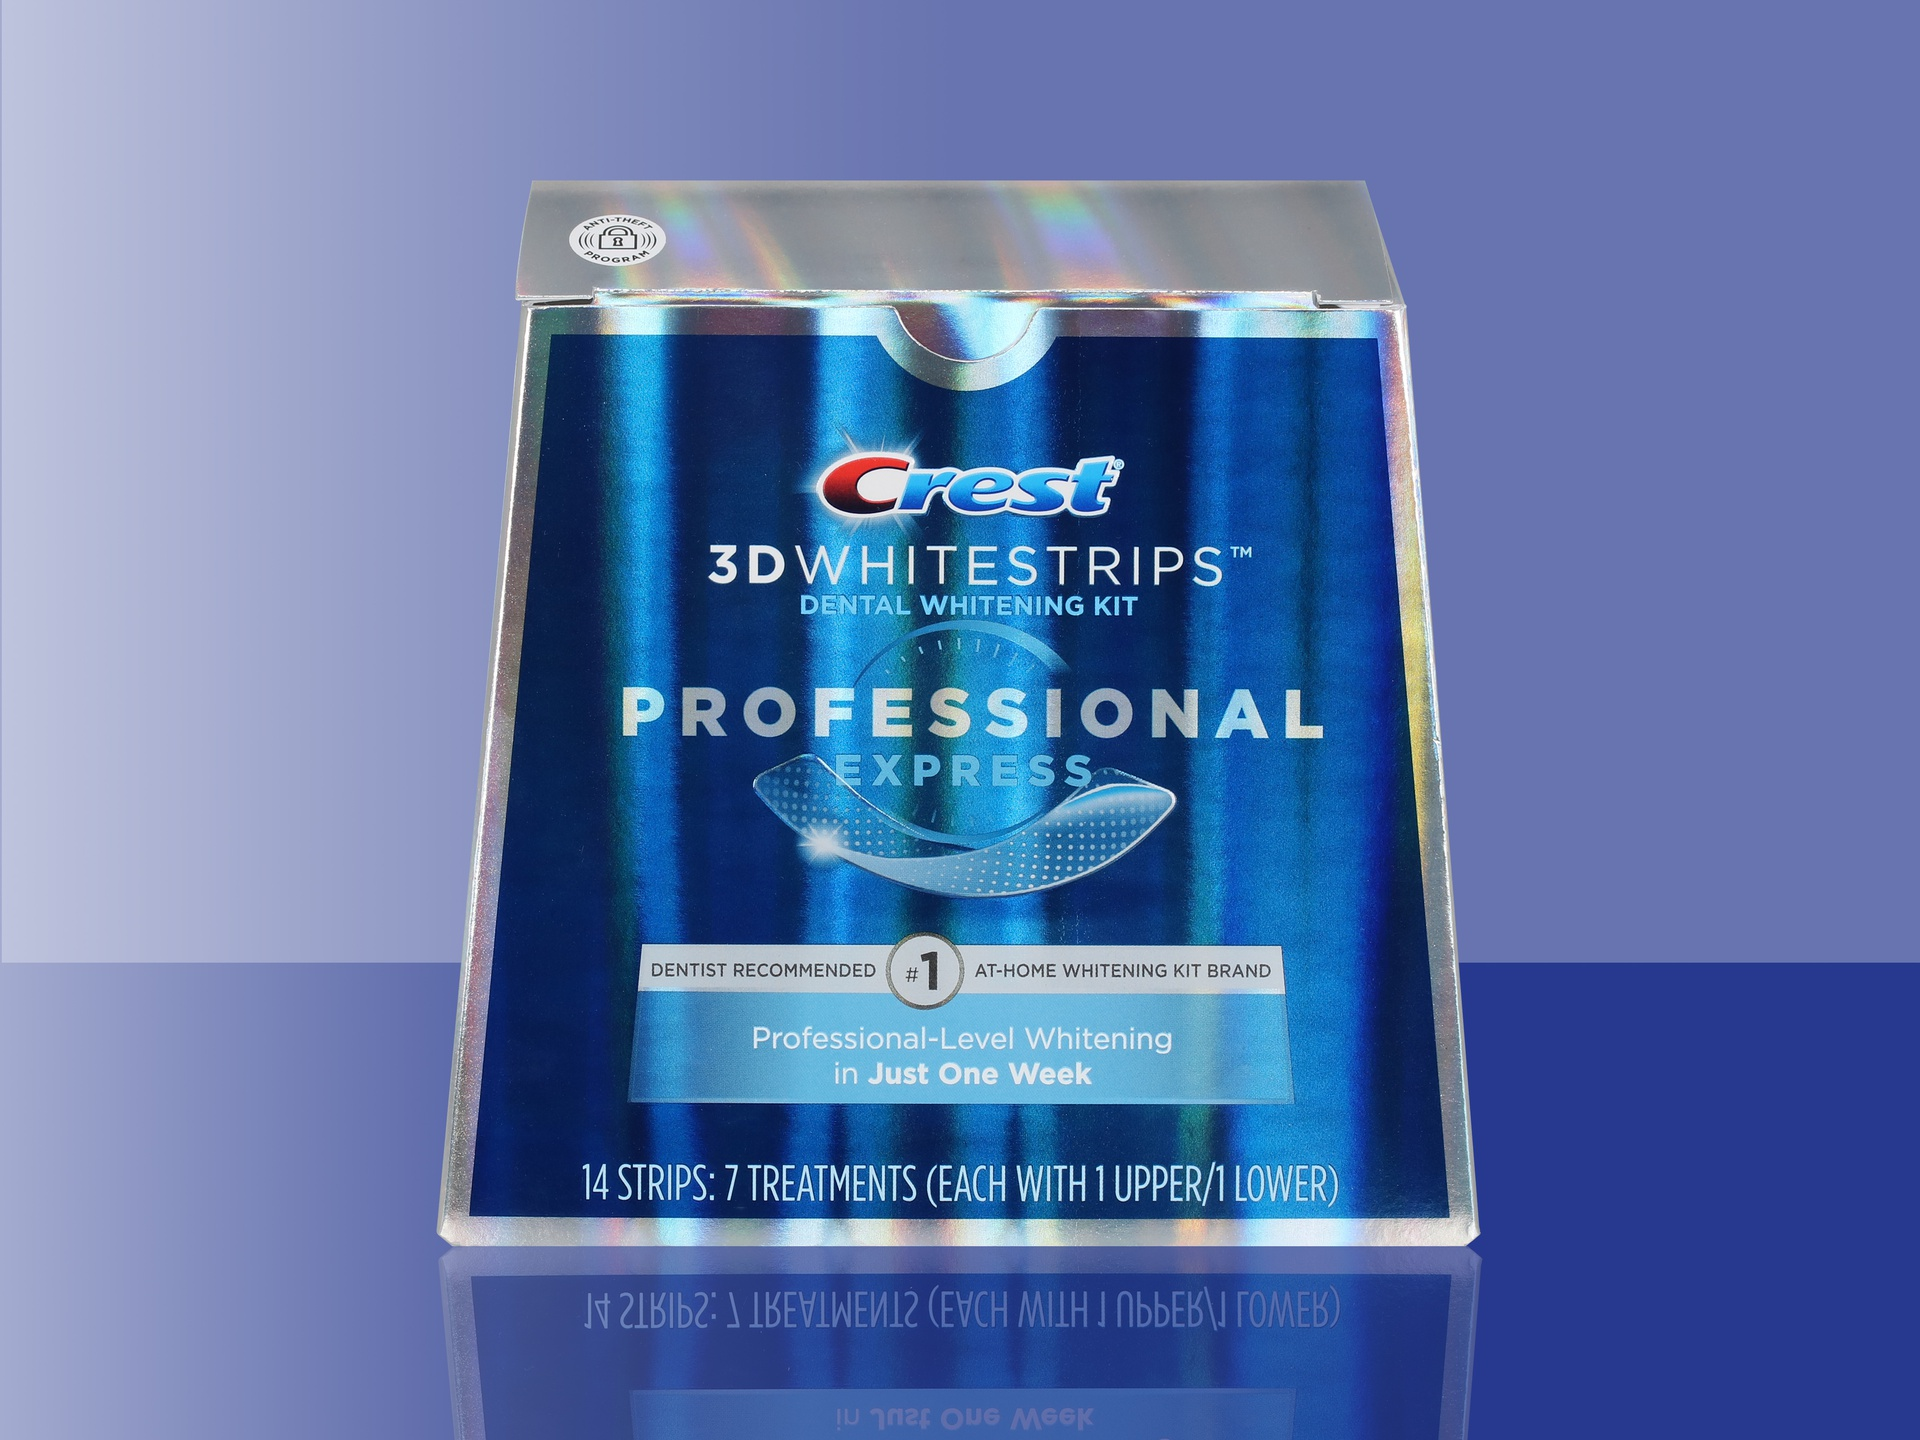 Crest 3D Whitestrips Professional White packaging